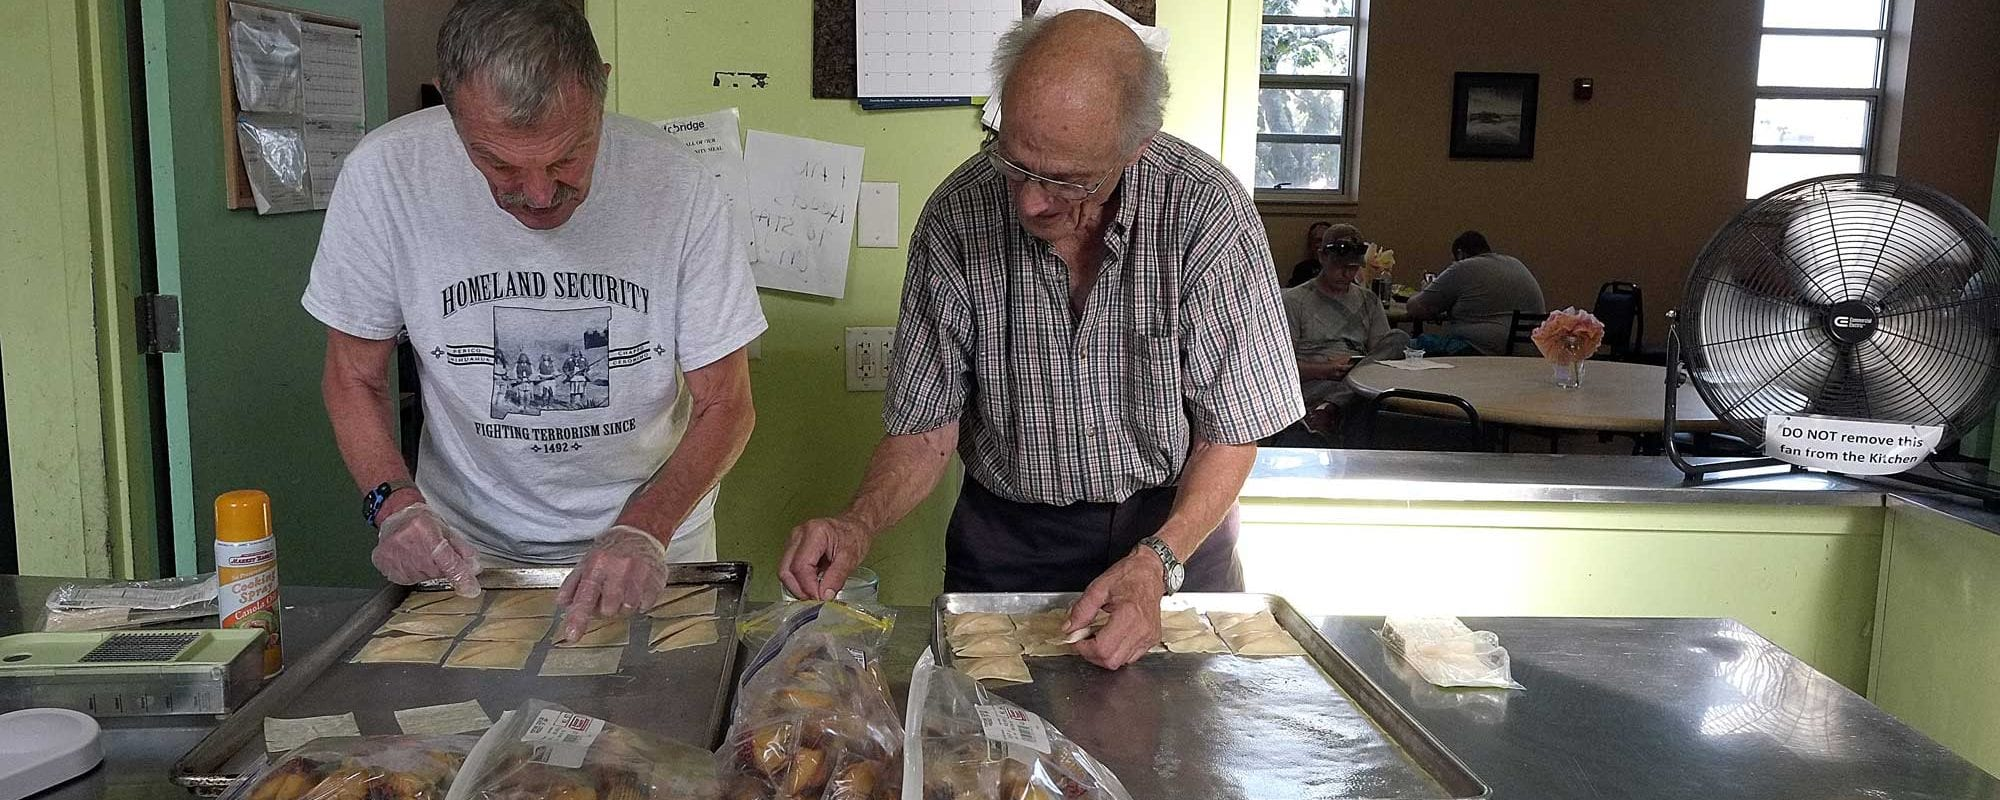 two men helping with community meals